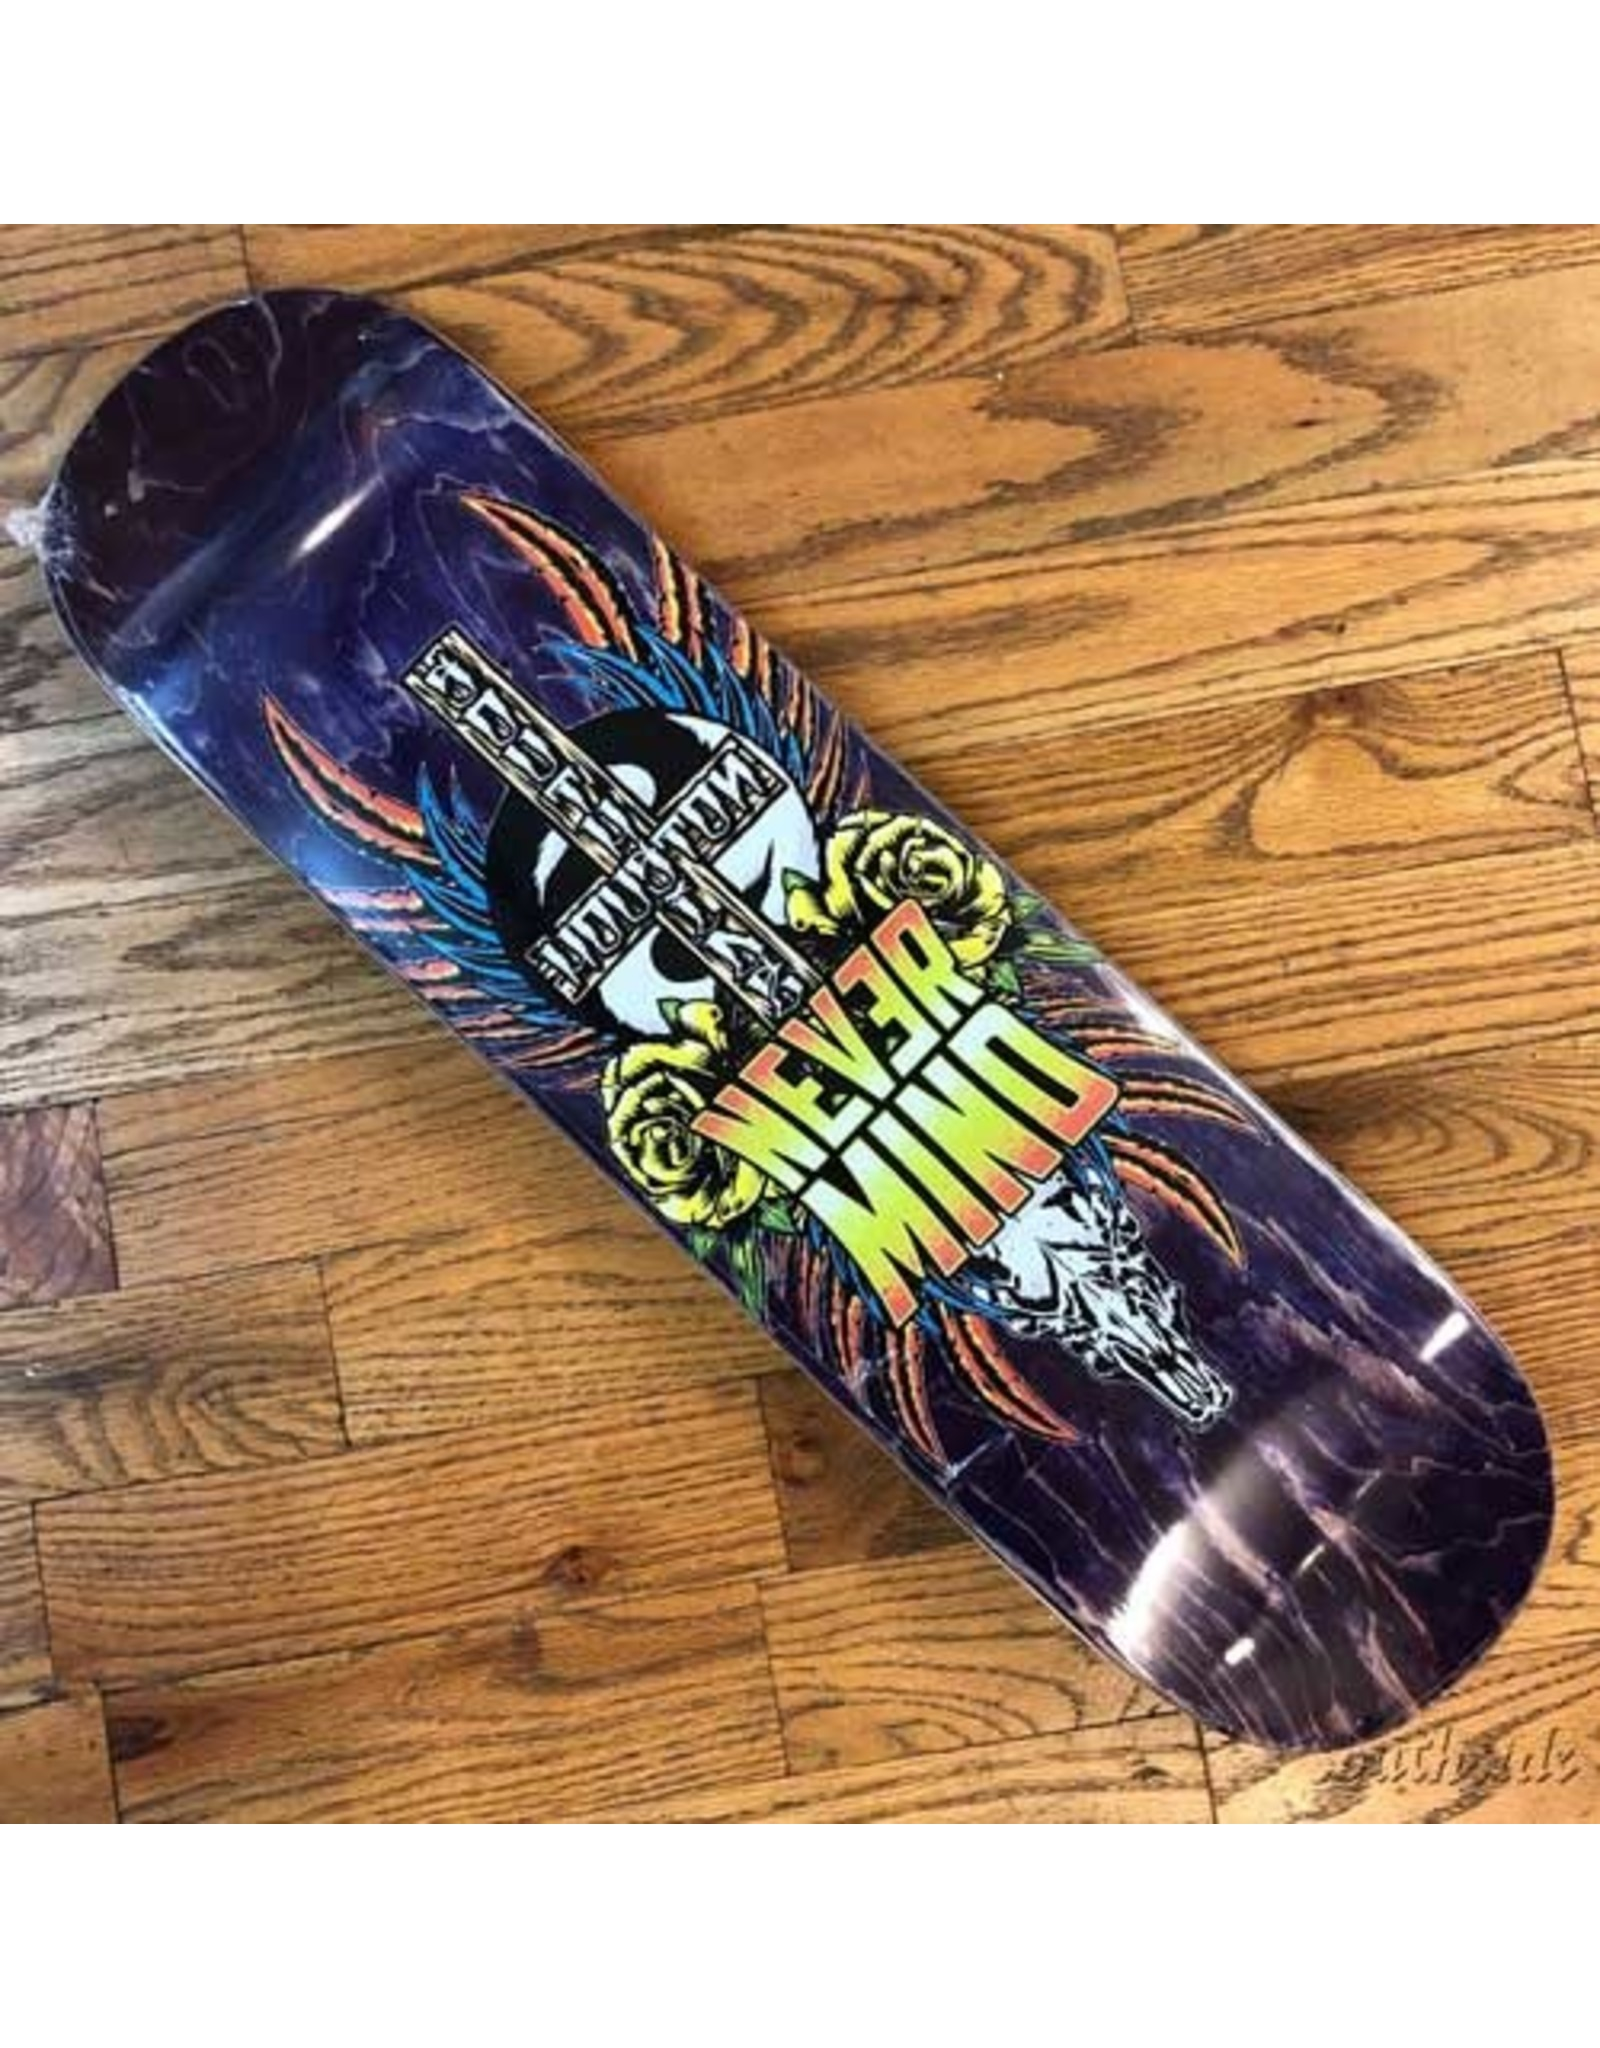 Southside Southside Nevermind Skateboards Deck 8.38x31.75 Yellow Flowers Various Stained Veneer BOX Shape